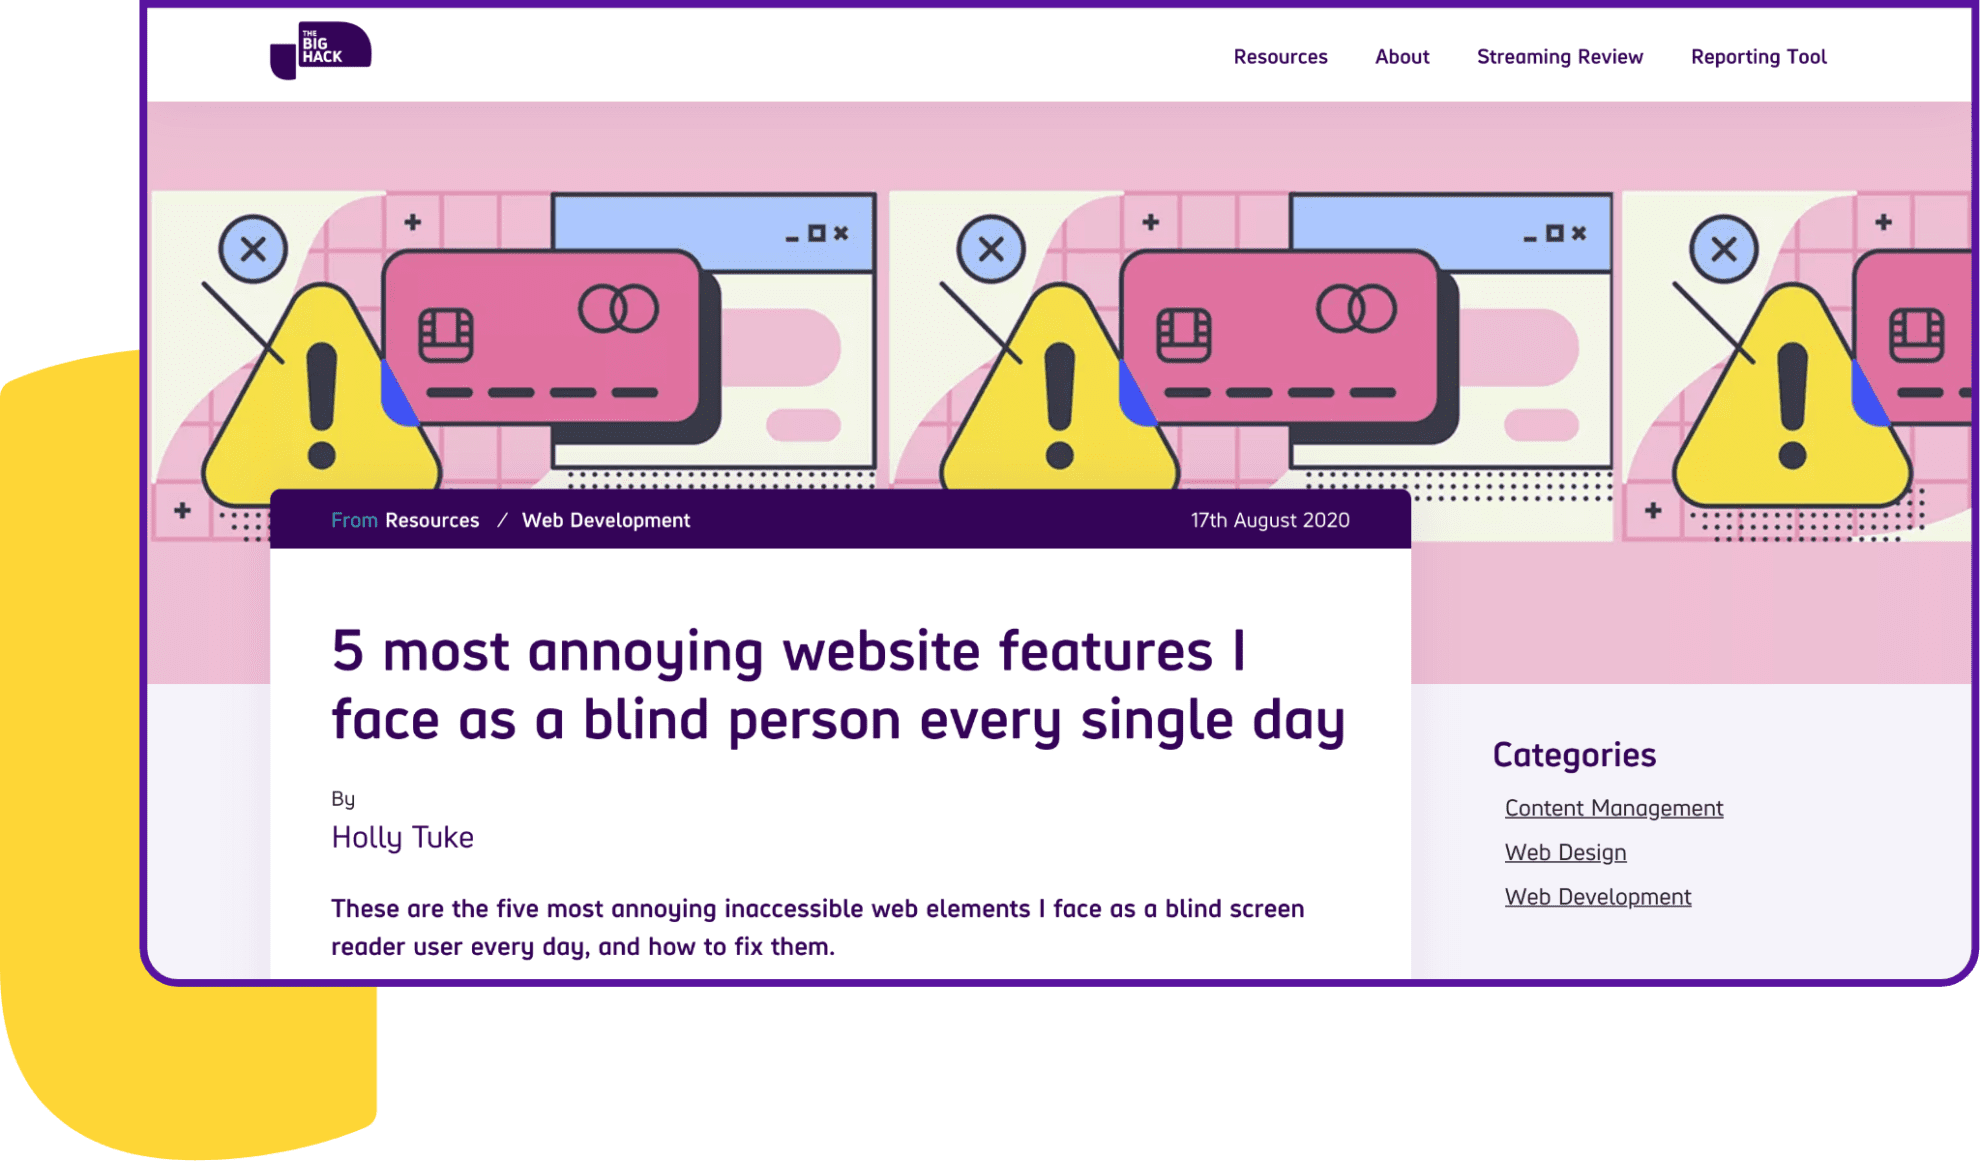 Screenshot of article titled: 5 most annoying website features I face as a blind person every single day